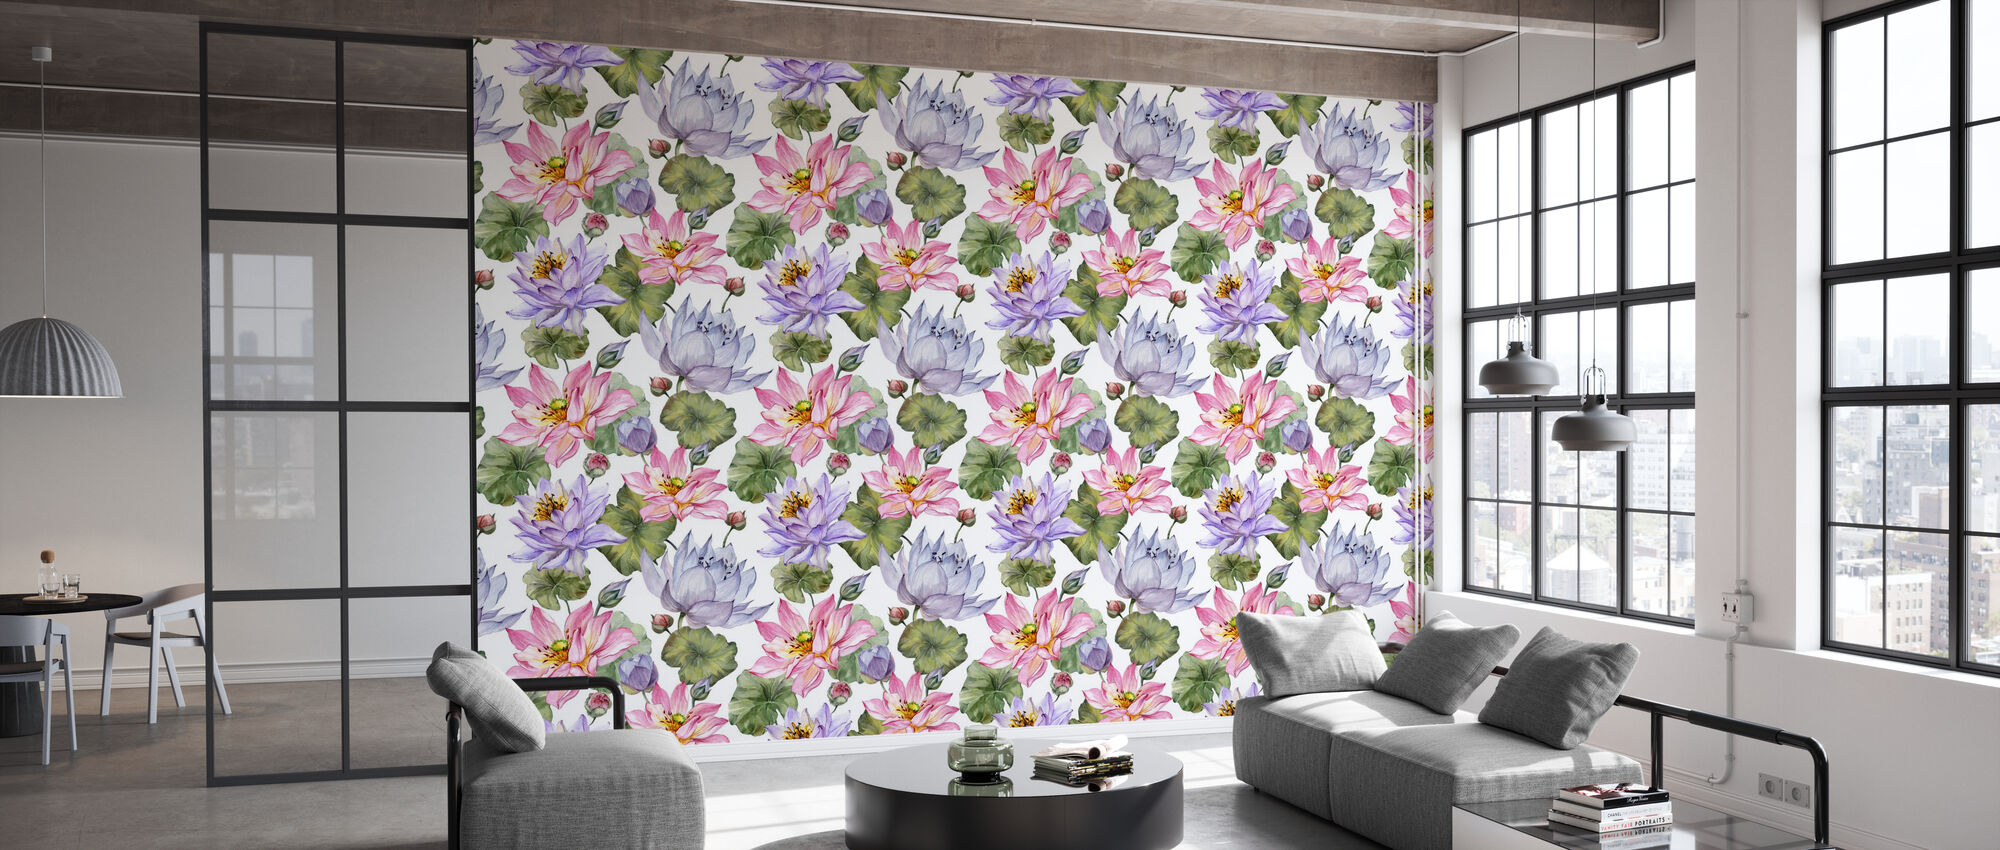 Lotus Floral - Wallpaper - Office